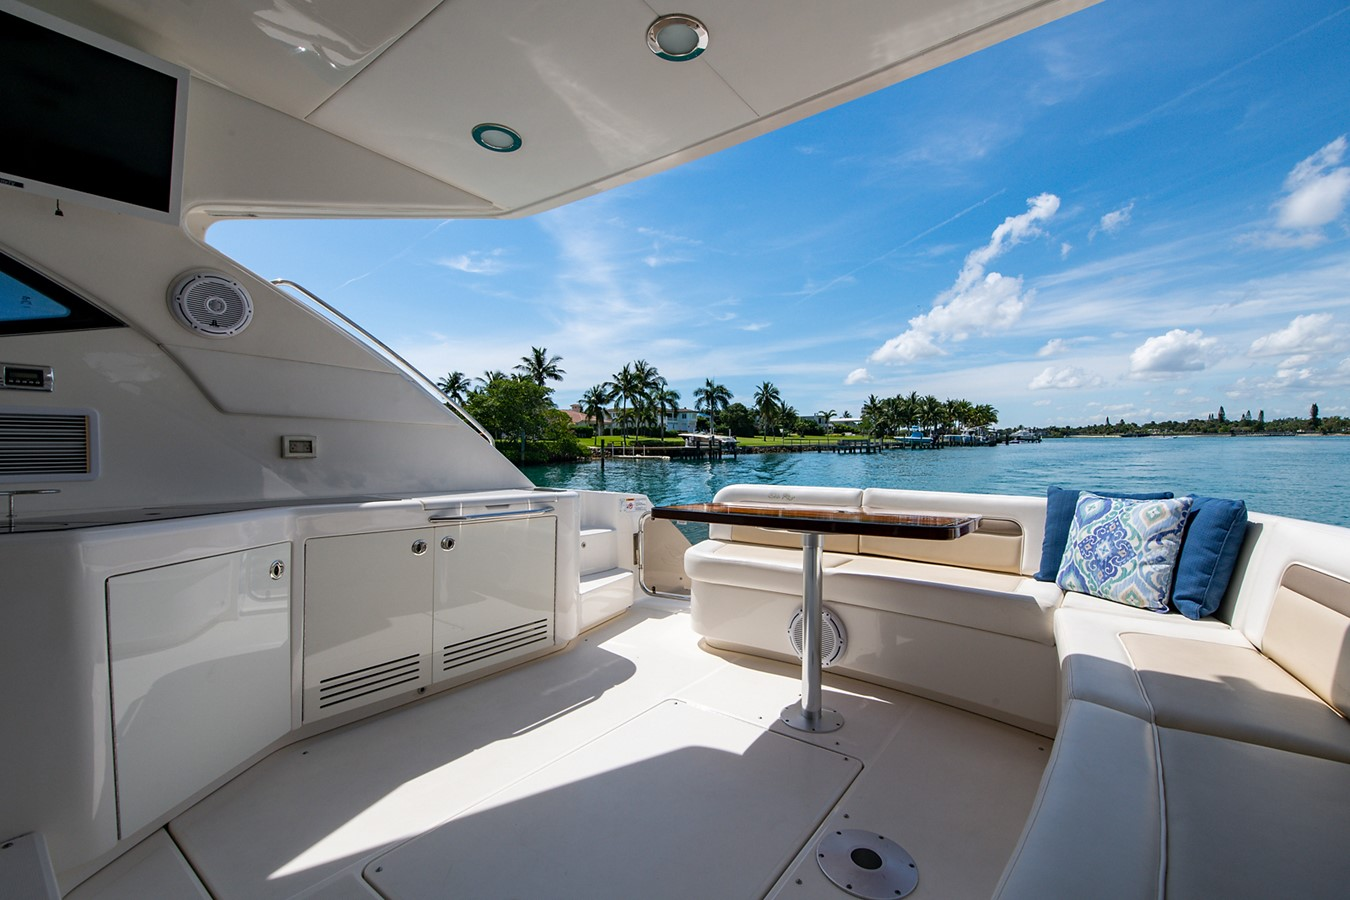 2013 SEA RAY Sundancer Motor Yacht 2531134